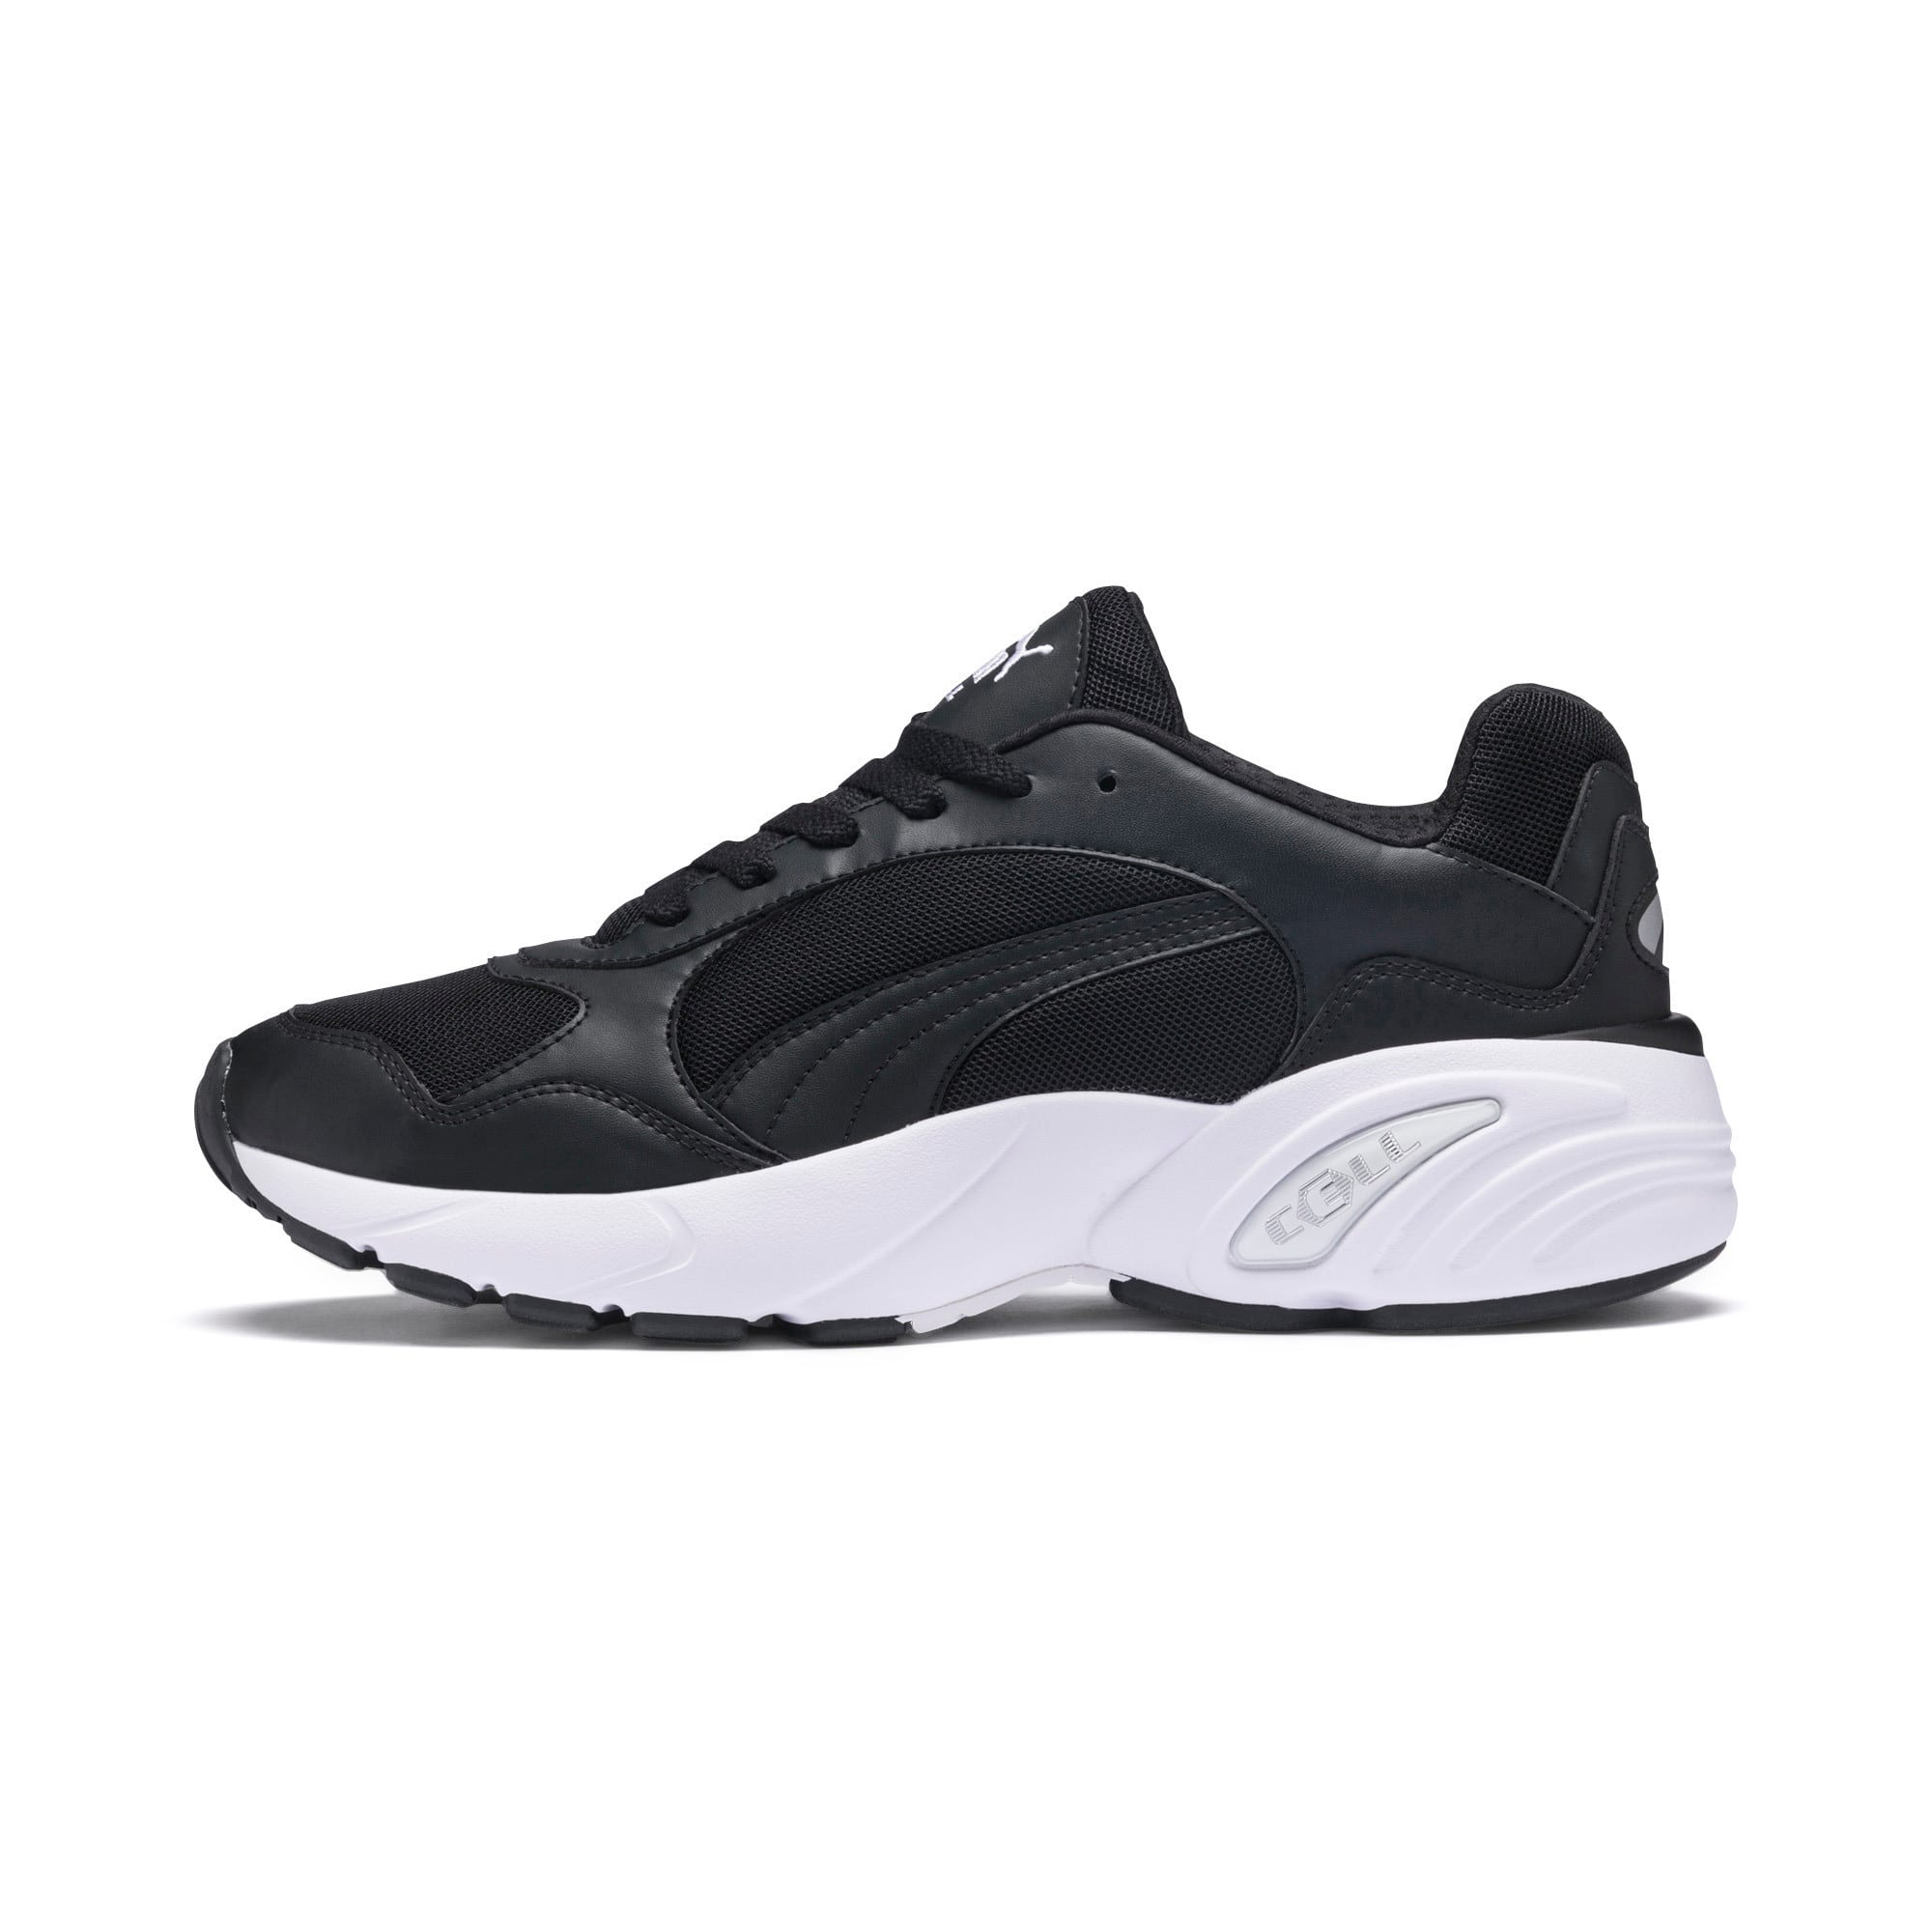 Thumbnail 1 of CELL Viper Trainers, Puma Black-Puma White, medium